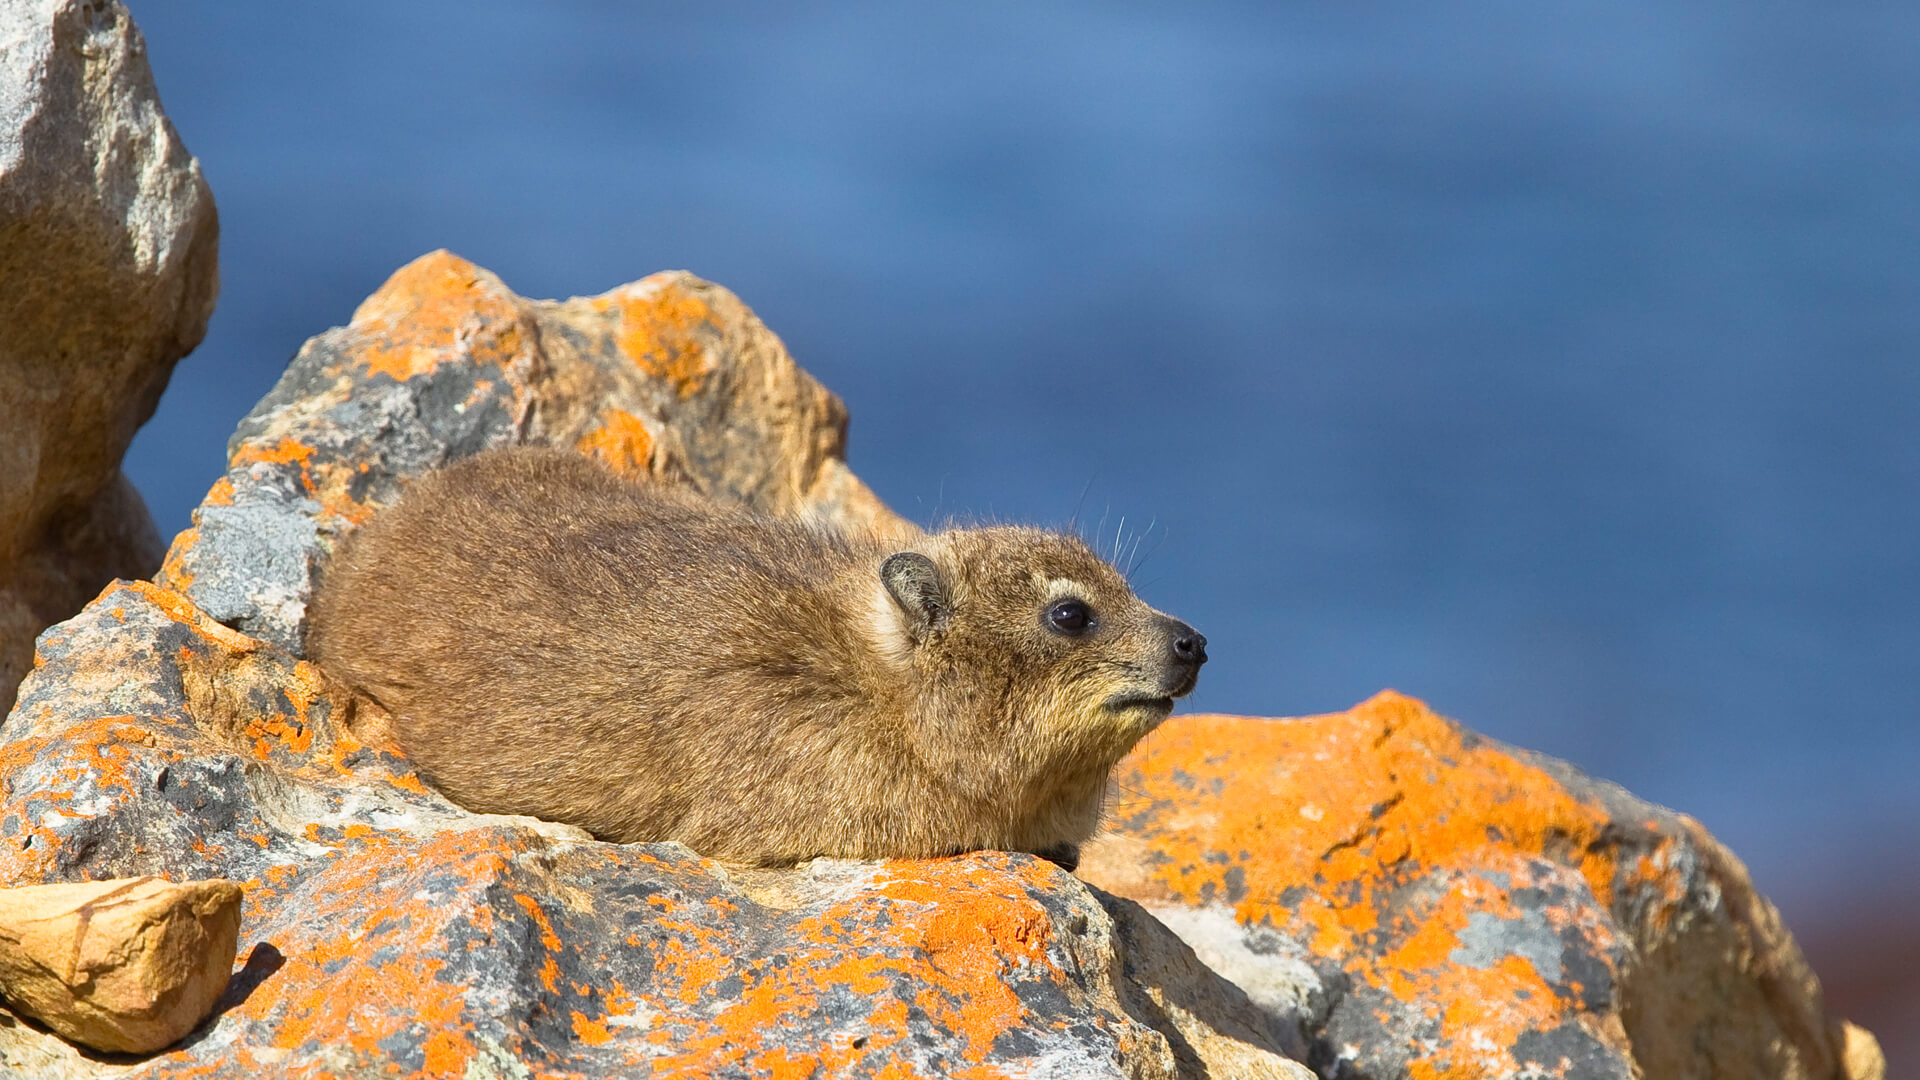 A Rock Hyrax or Dassie, on lichen covered rocks in Cape Peninsula, South Africa